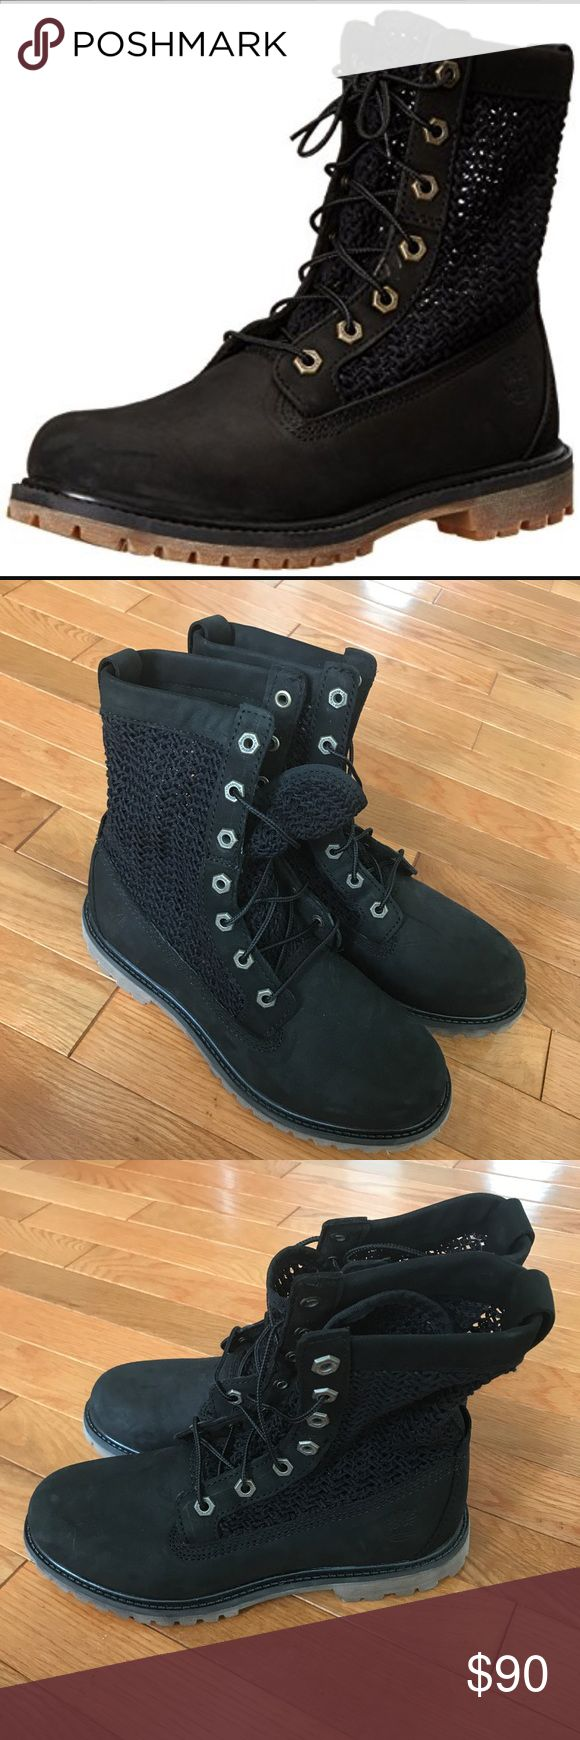 Timberland open weave boots 7.5 new Timberland open weave boots 7.5 new no box Timberland Shoes Combat & Moto Boots